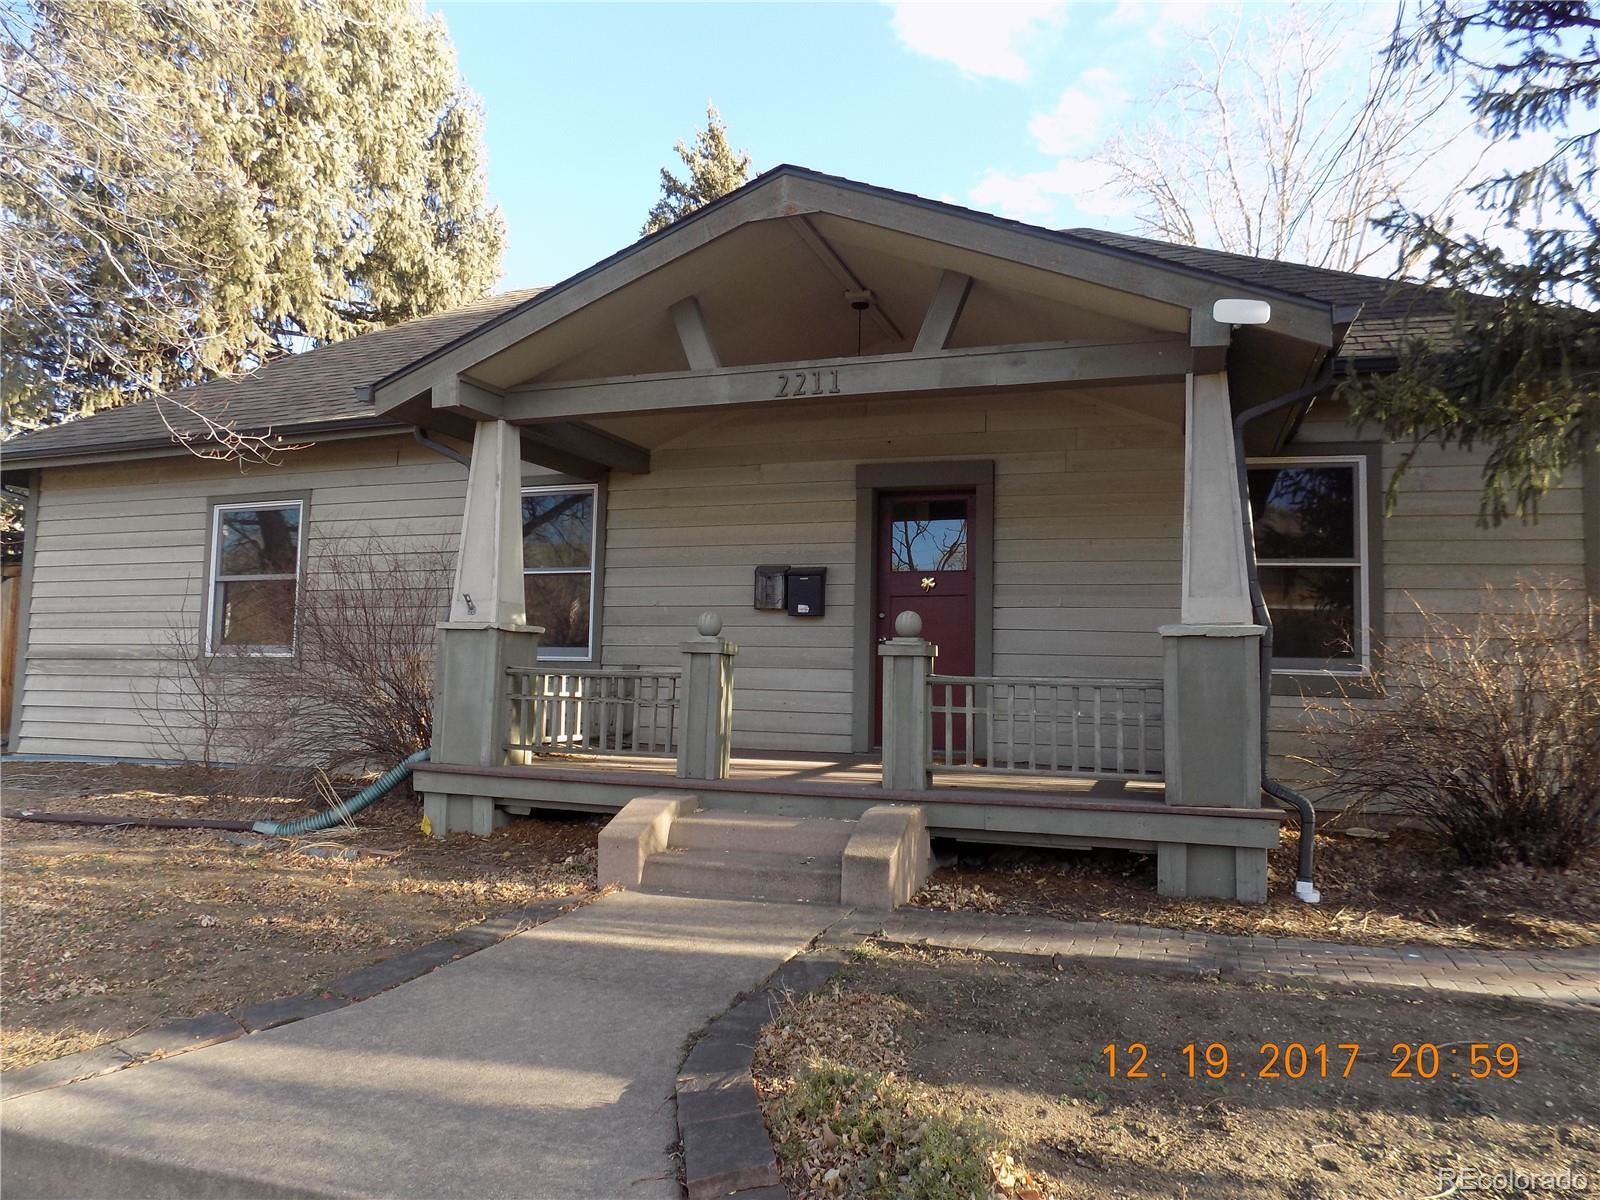 2211 Ford Street, Golden, CO 80401 - #: 4015220